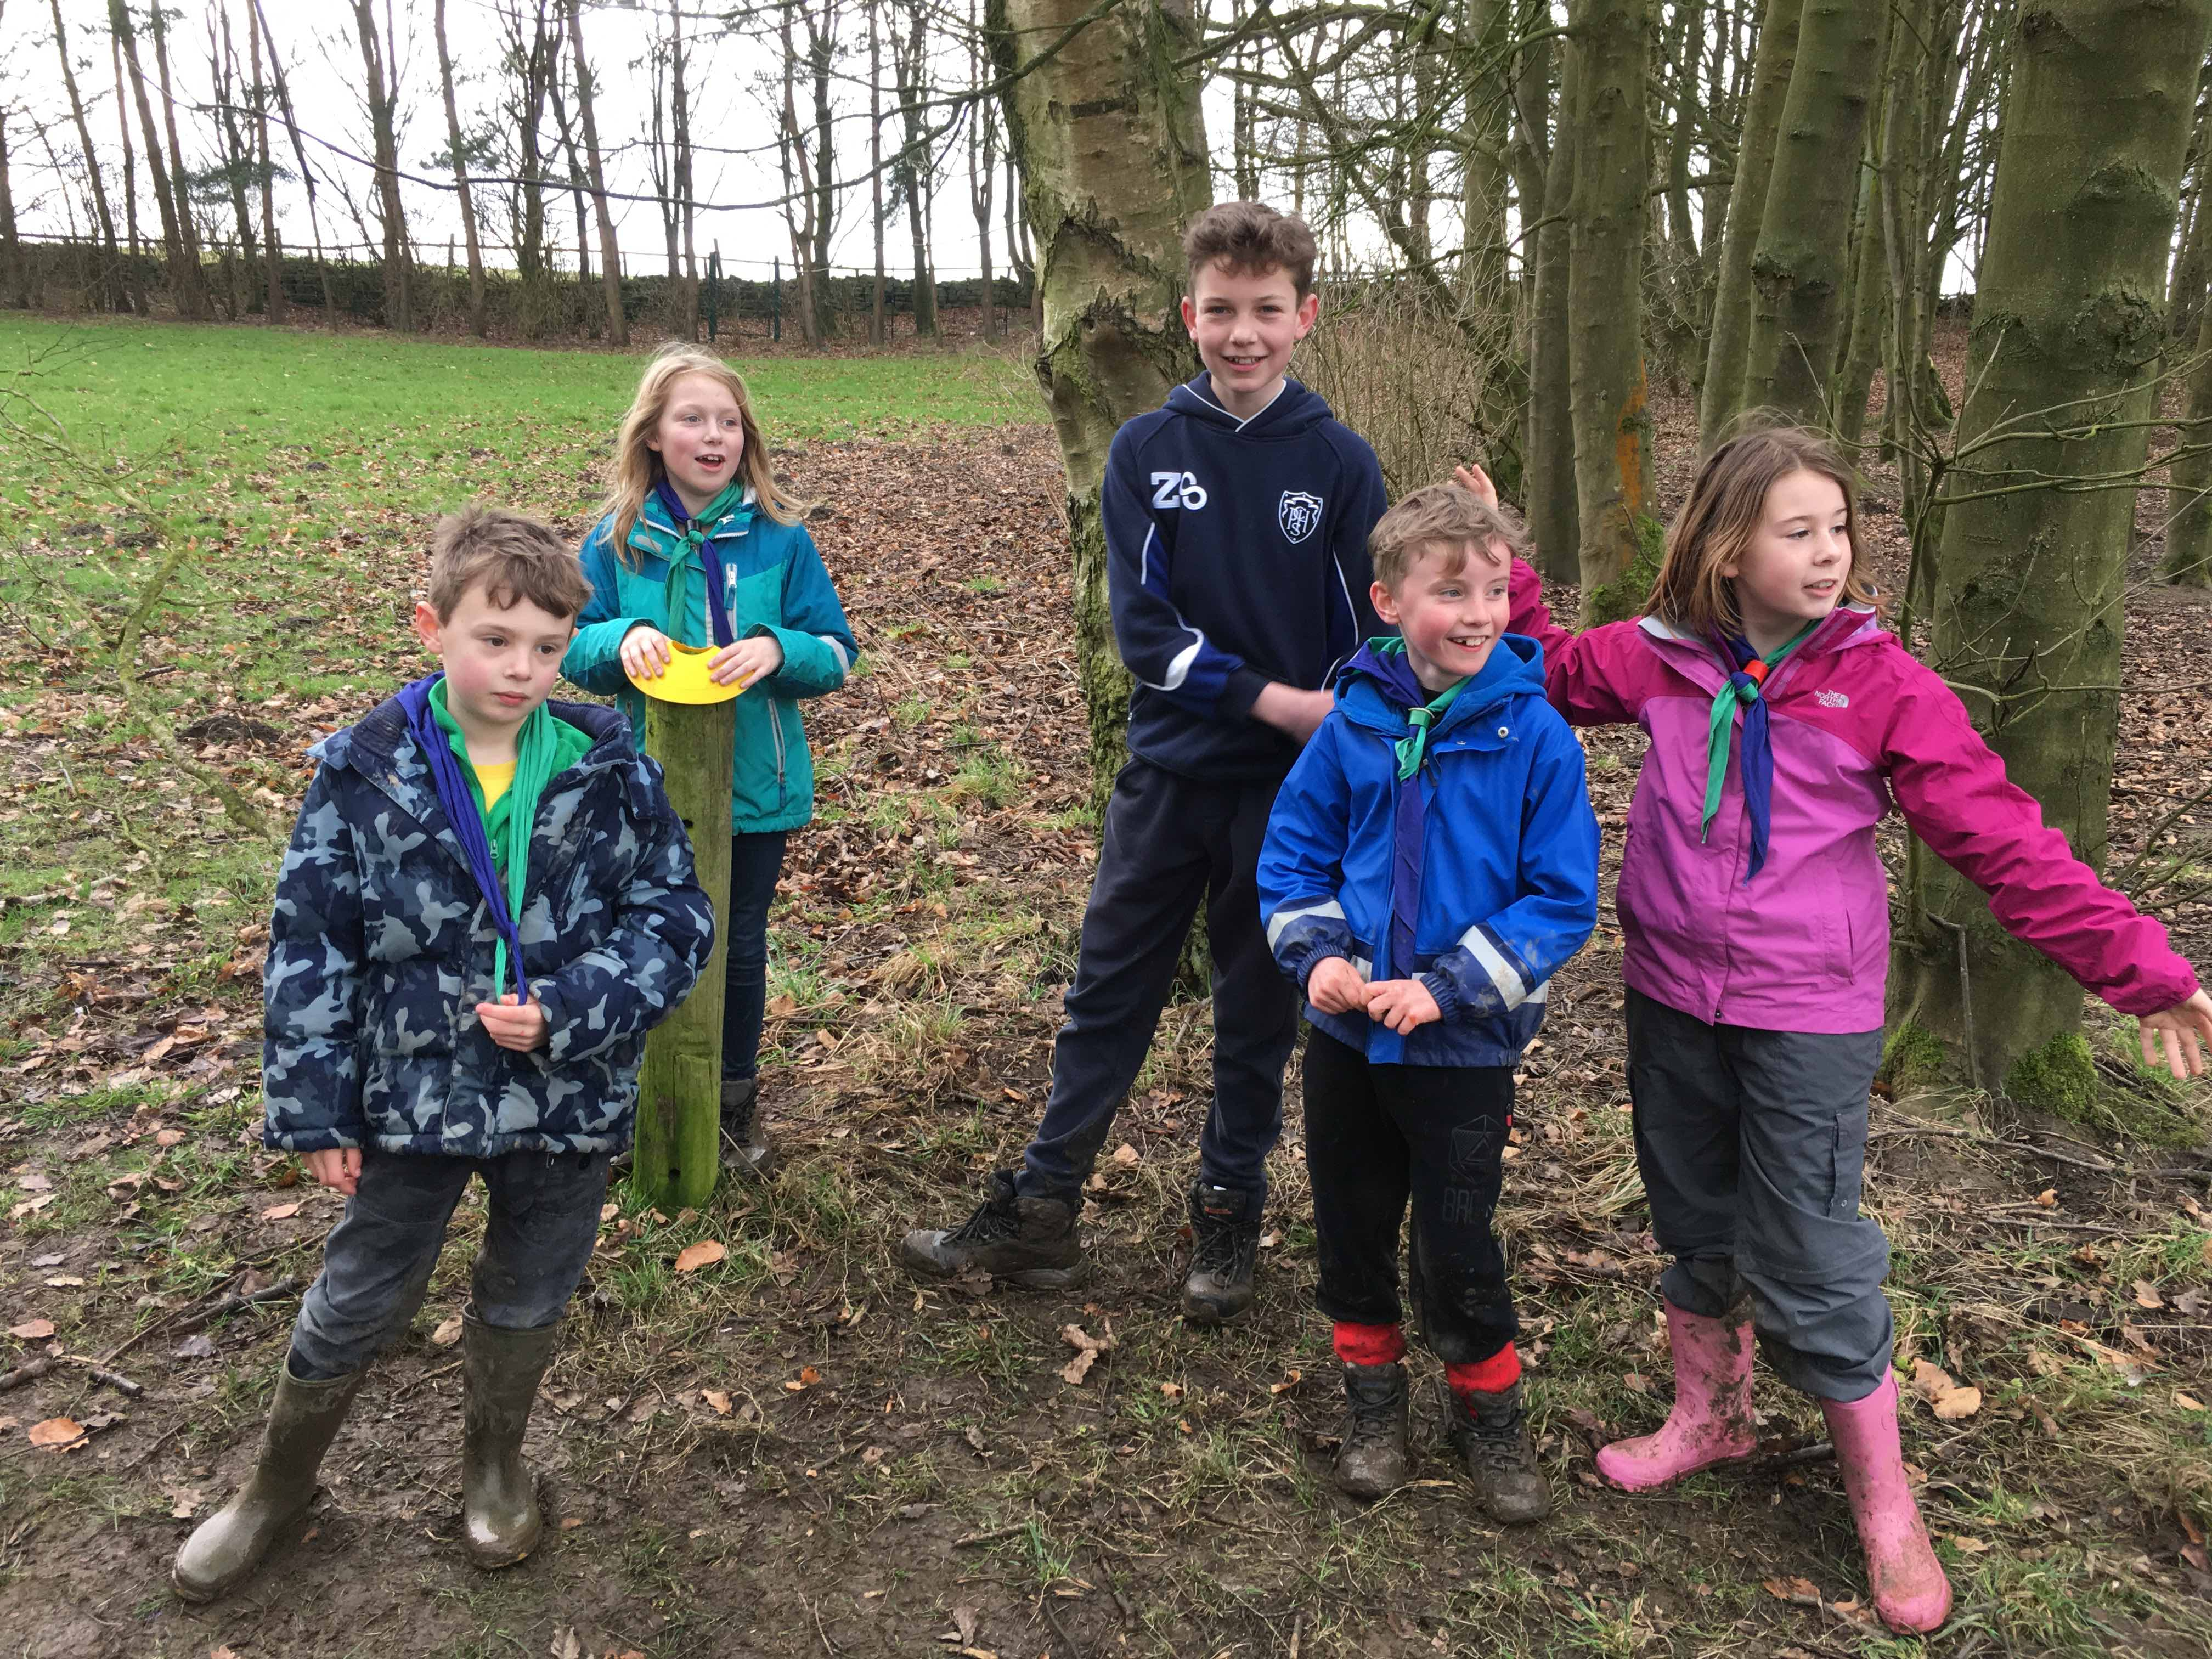 2nd otley cubs - tired but happy